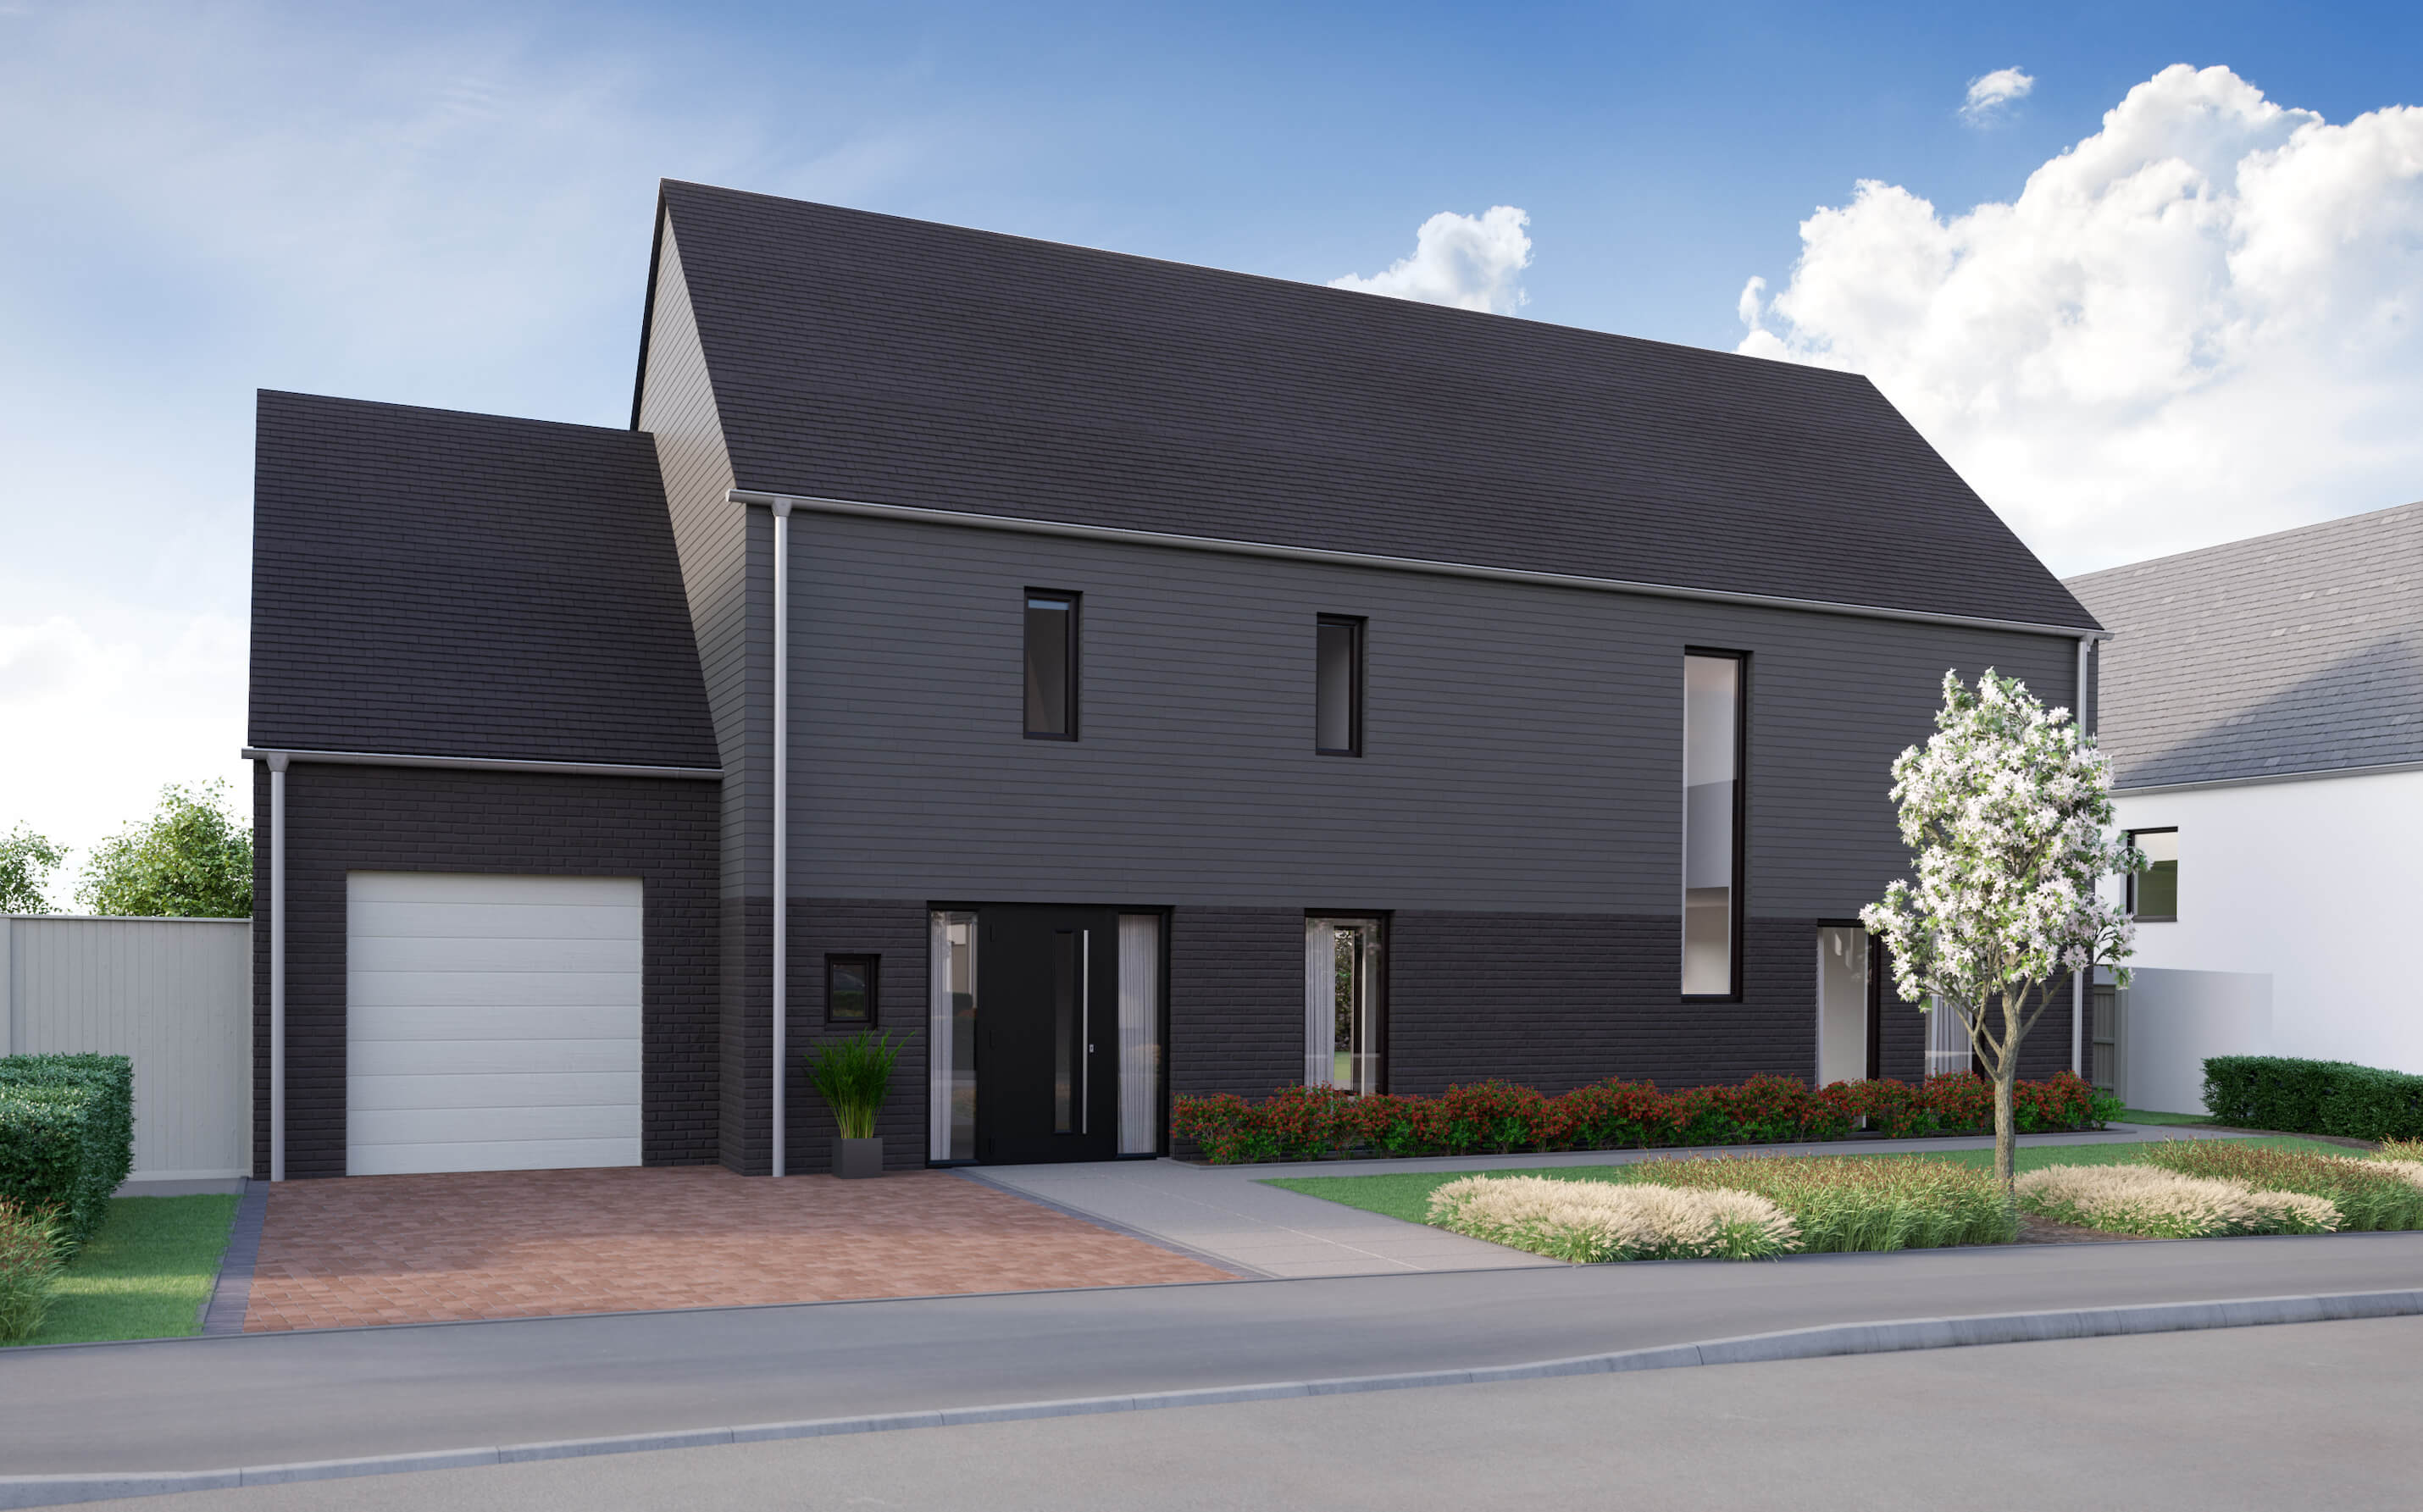 Introducing Our Newest Property Available at Forge Weir View